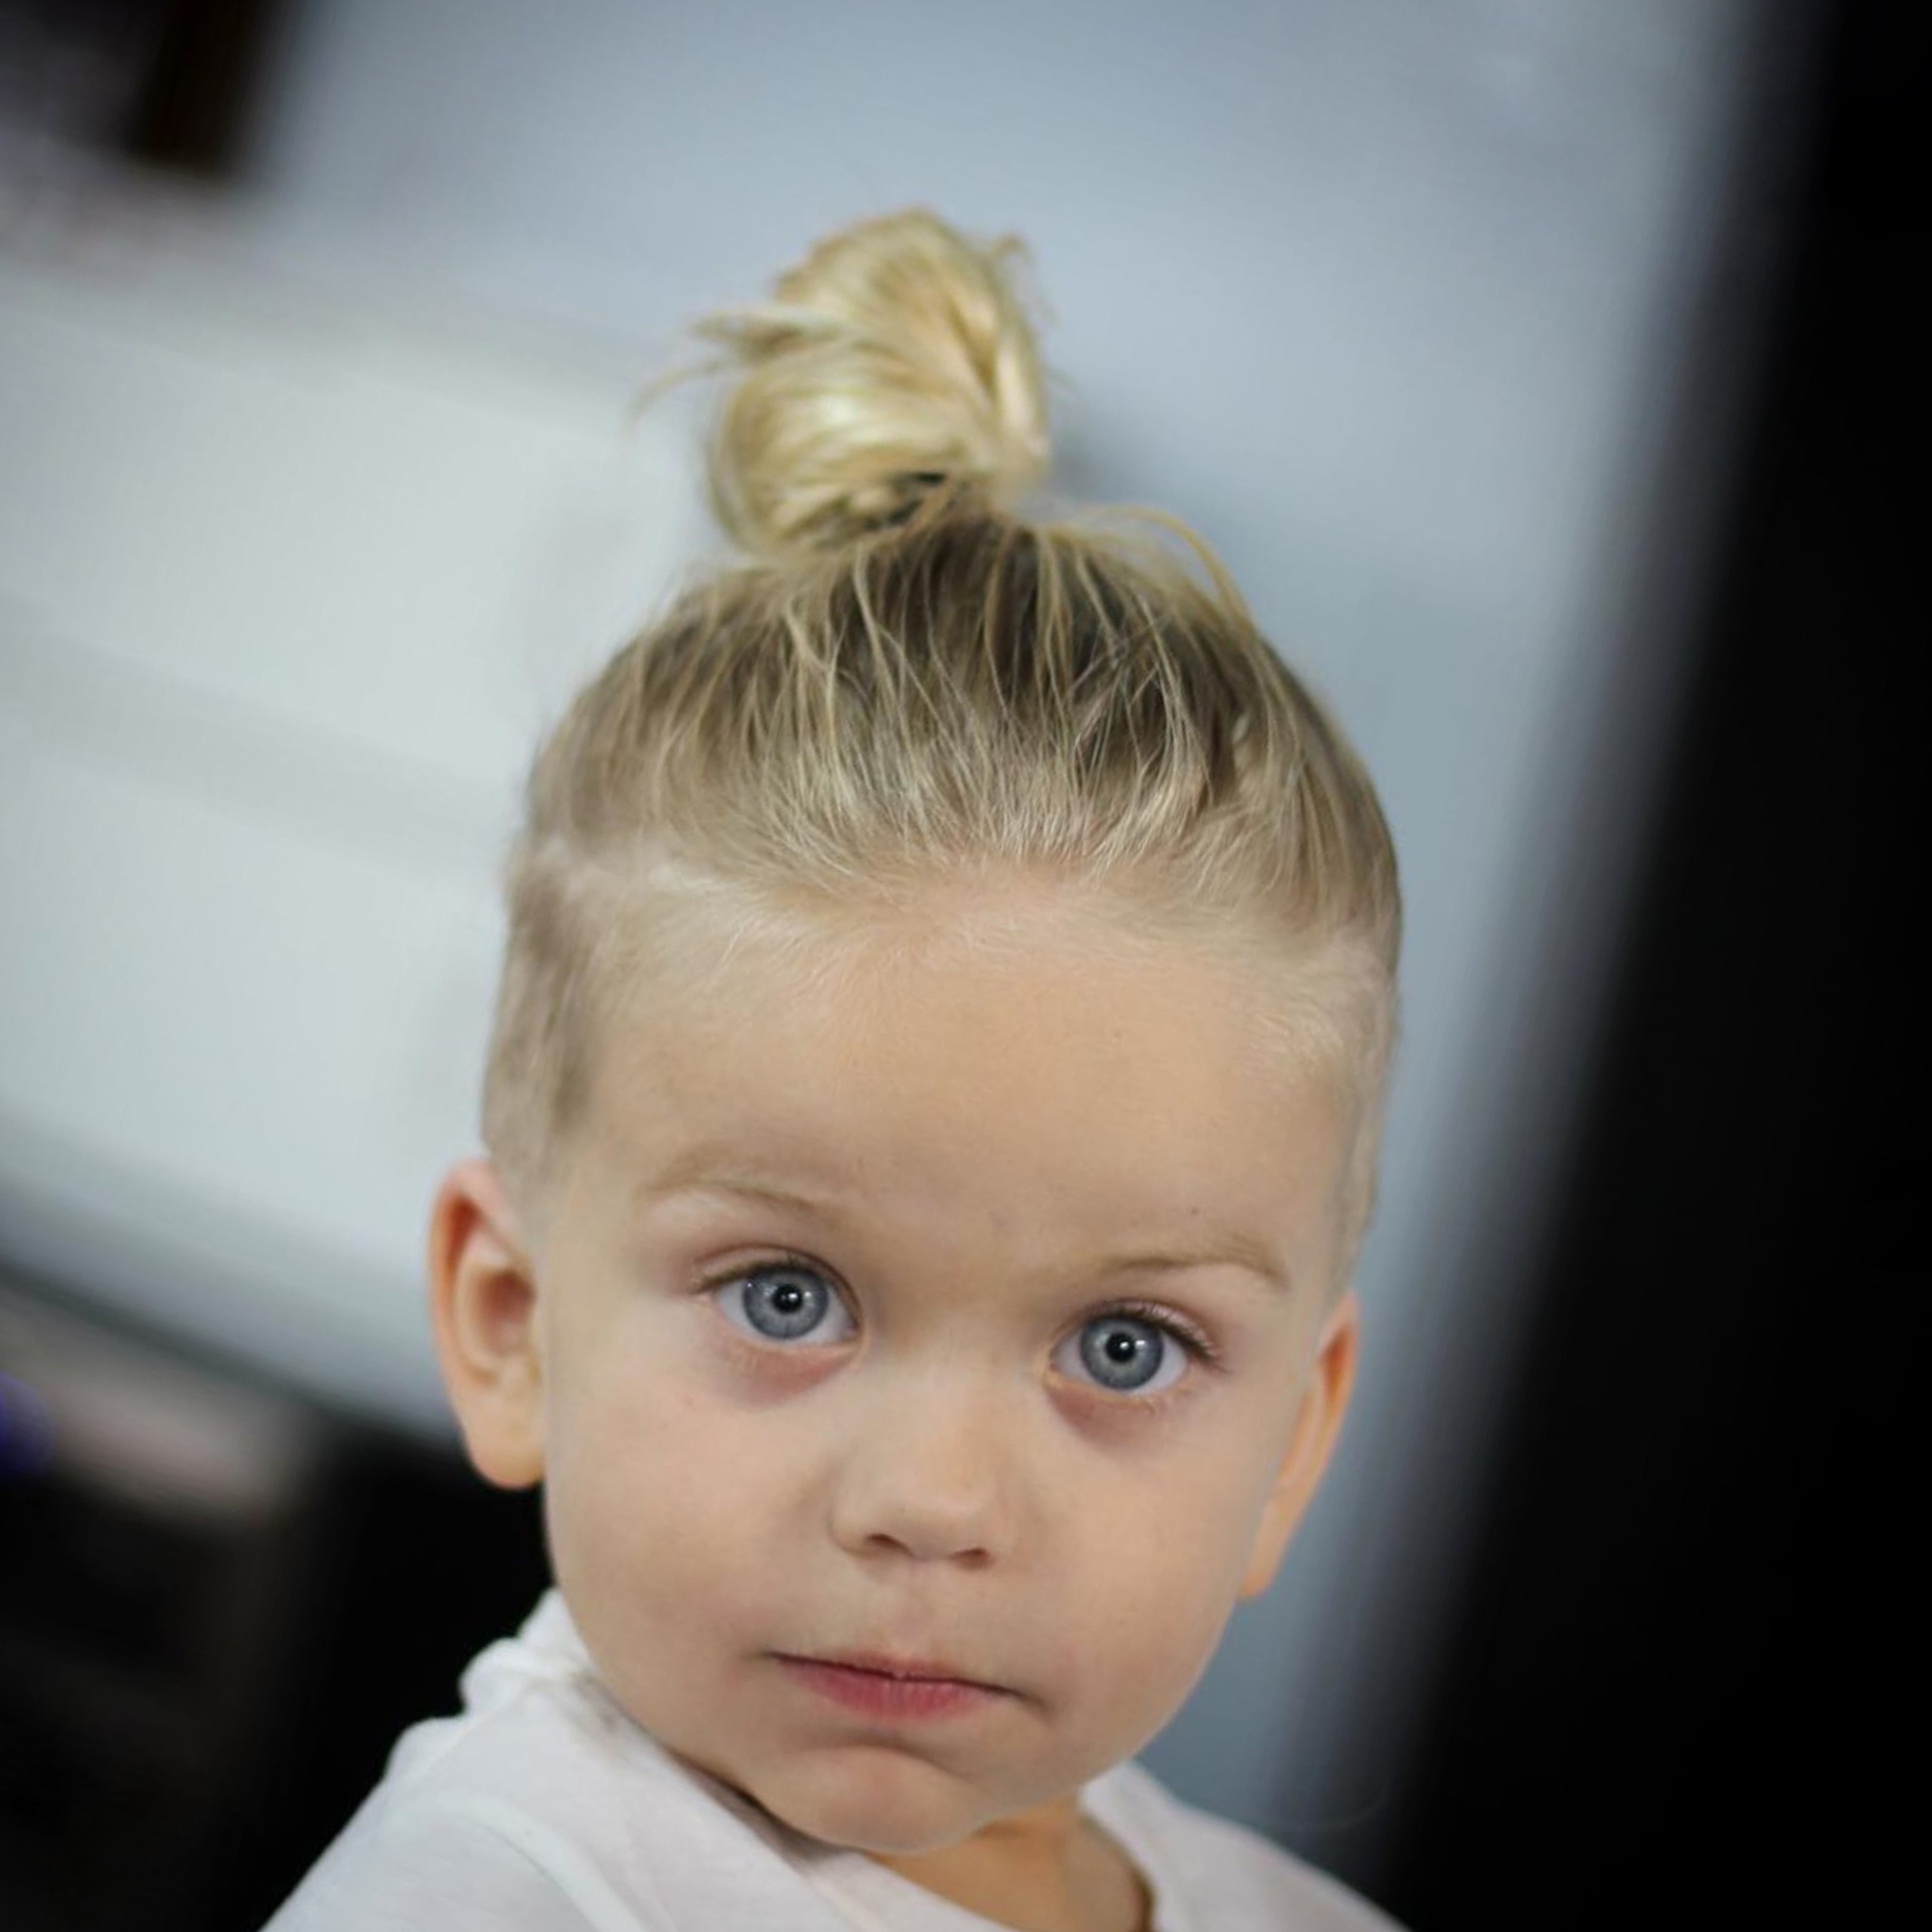 A baby male bun hairstyle.